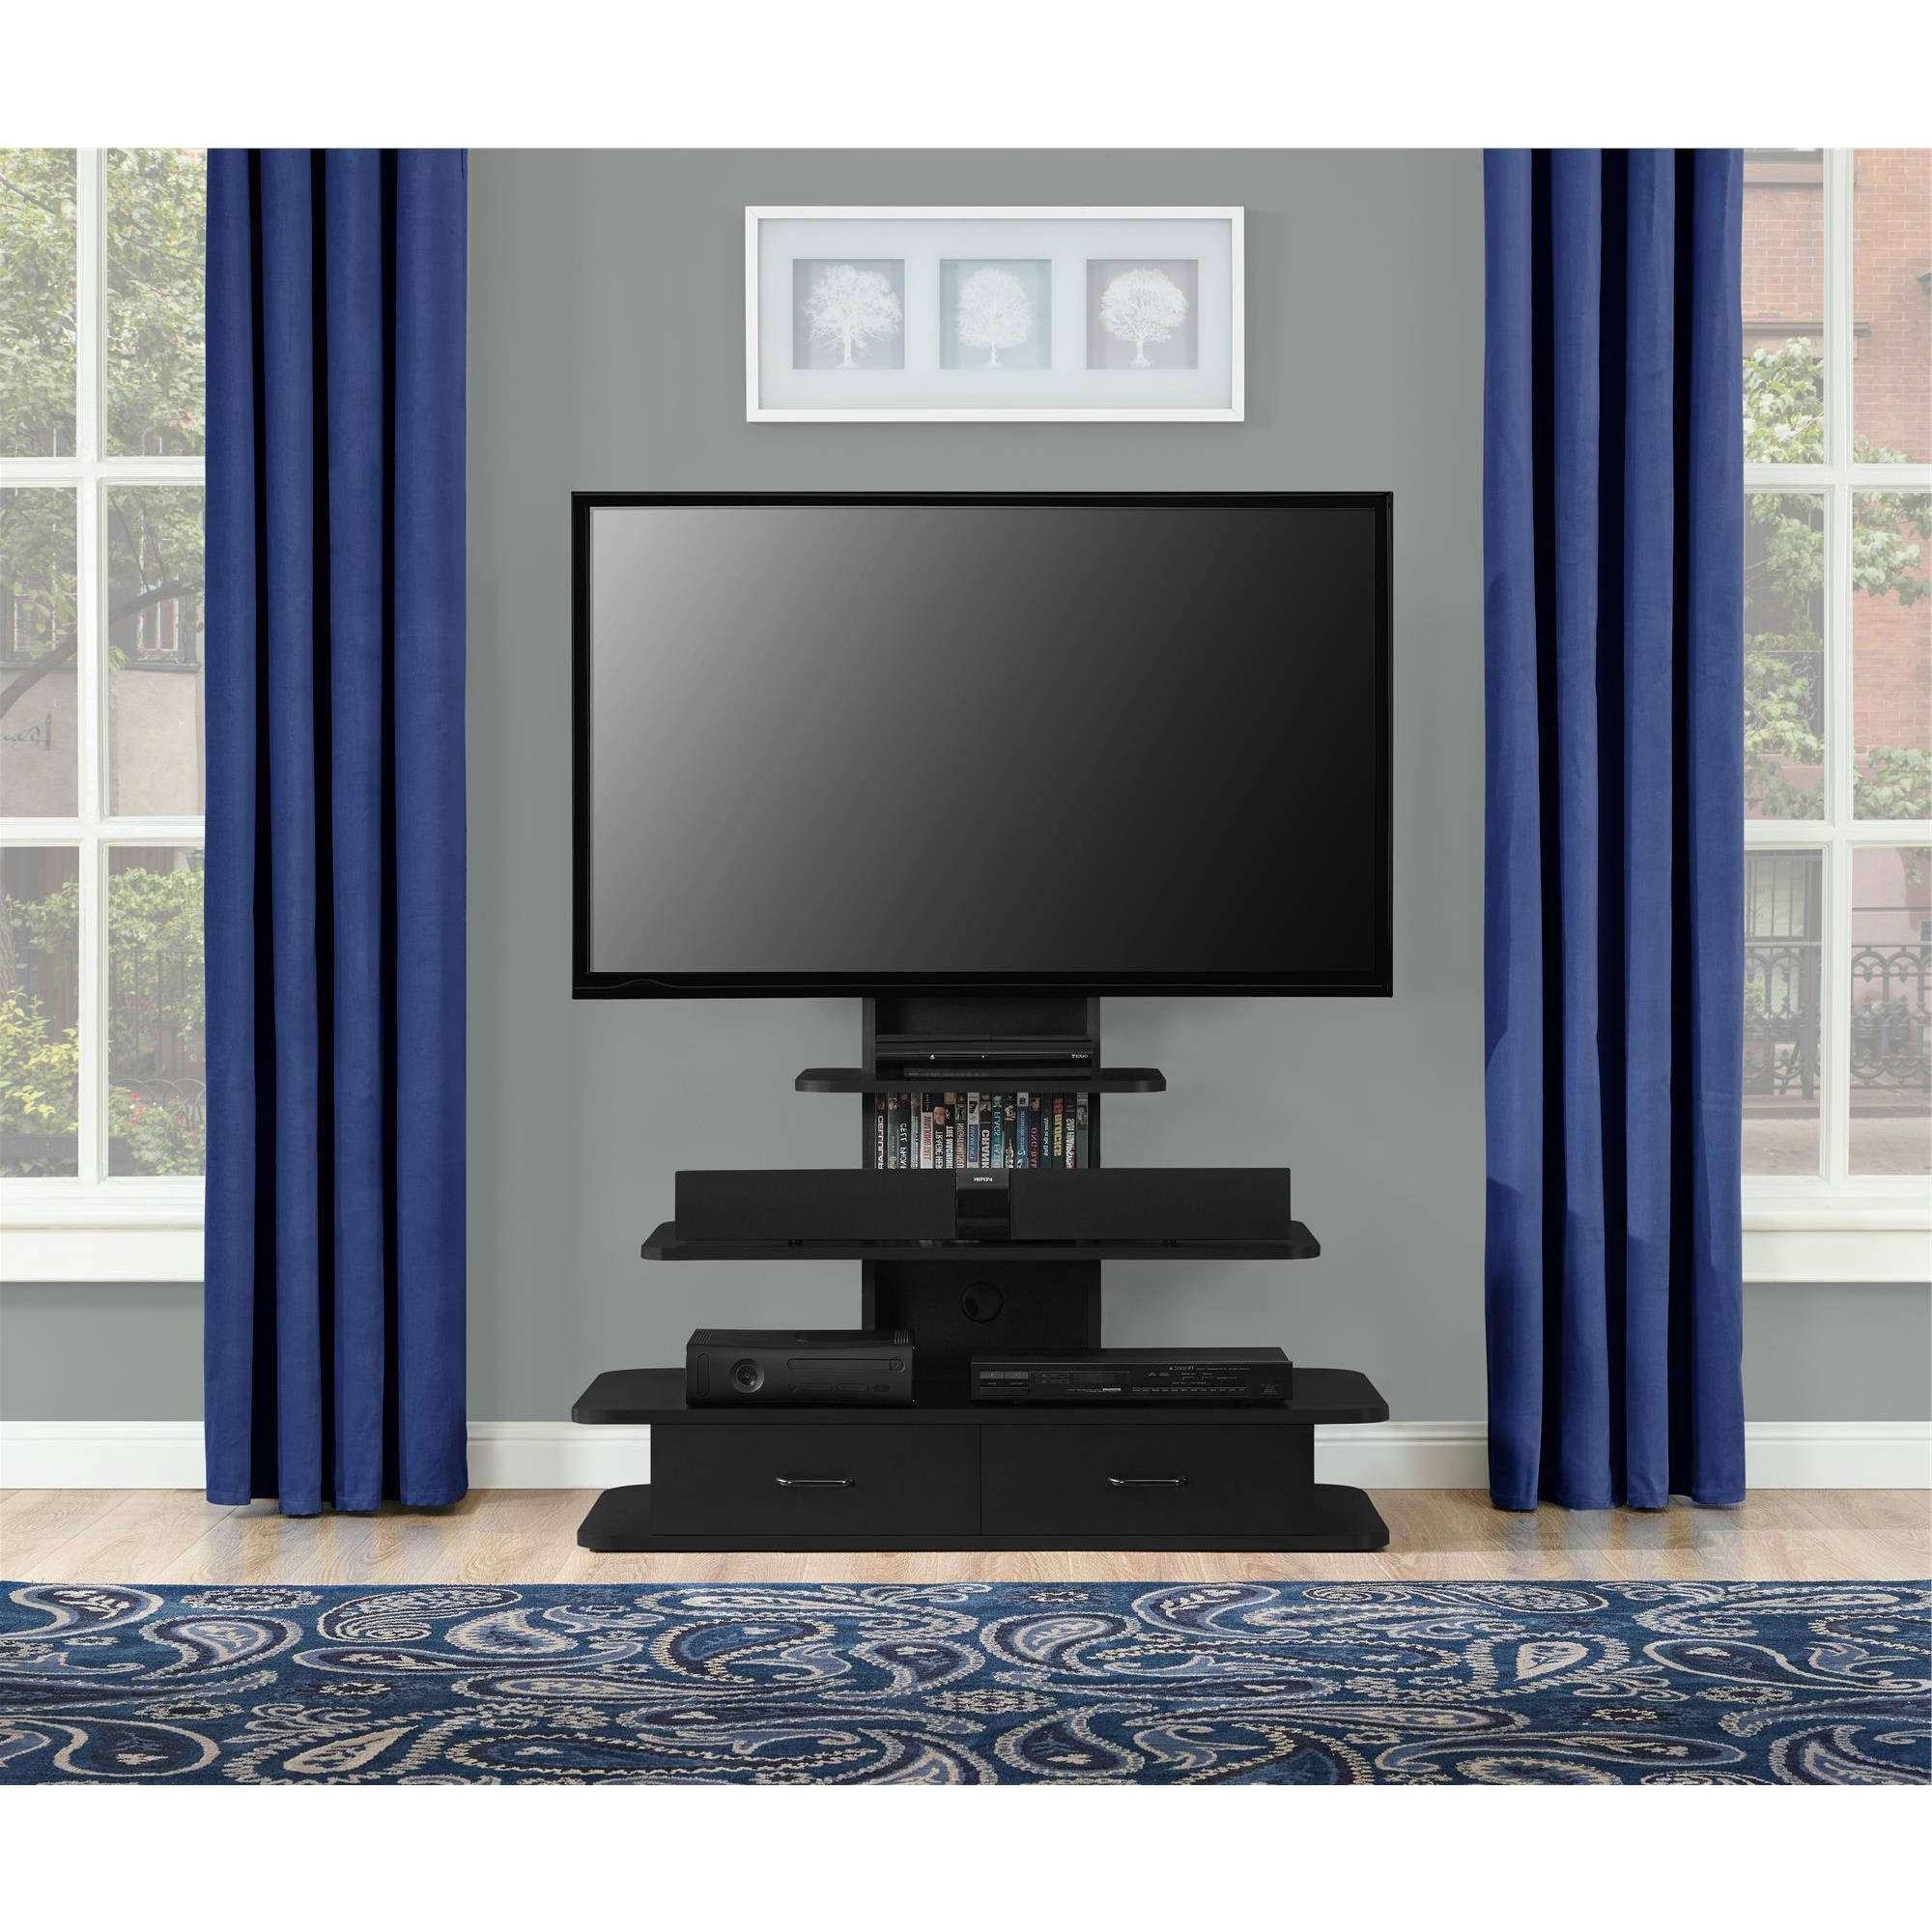 Tv : Amazing Tv Stands For 70 Flat Screen Contemporary Espresso Tv Throughout Tv Stands For 70 Flat Screen (View 12 of 15)